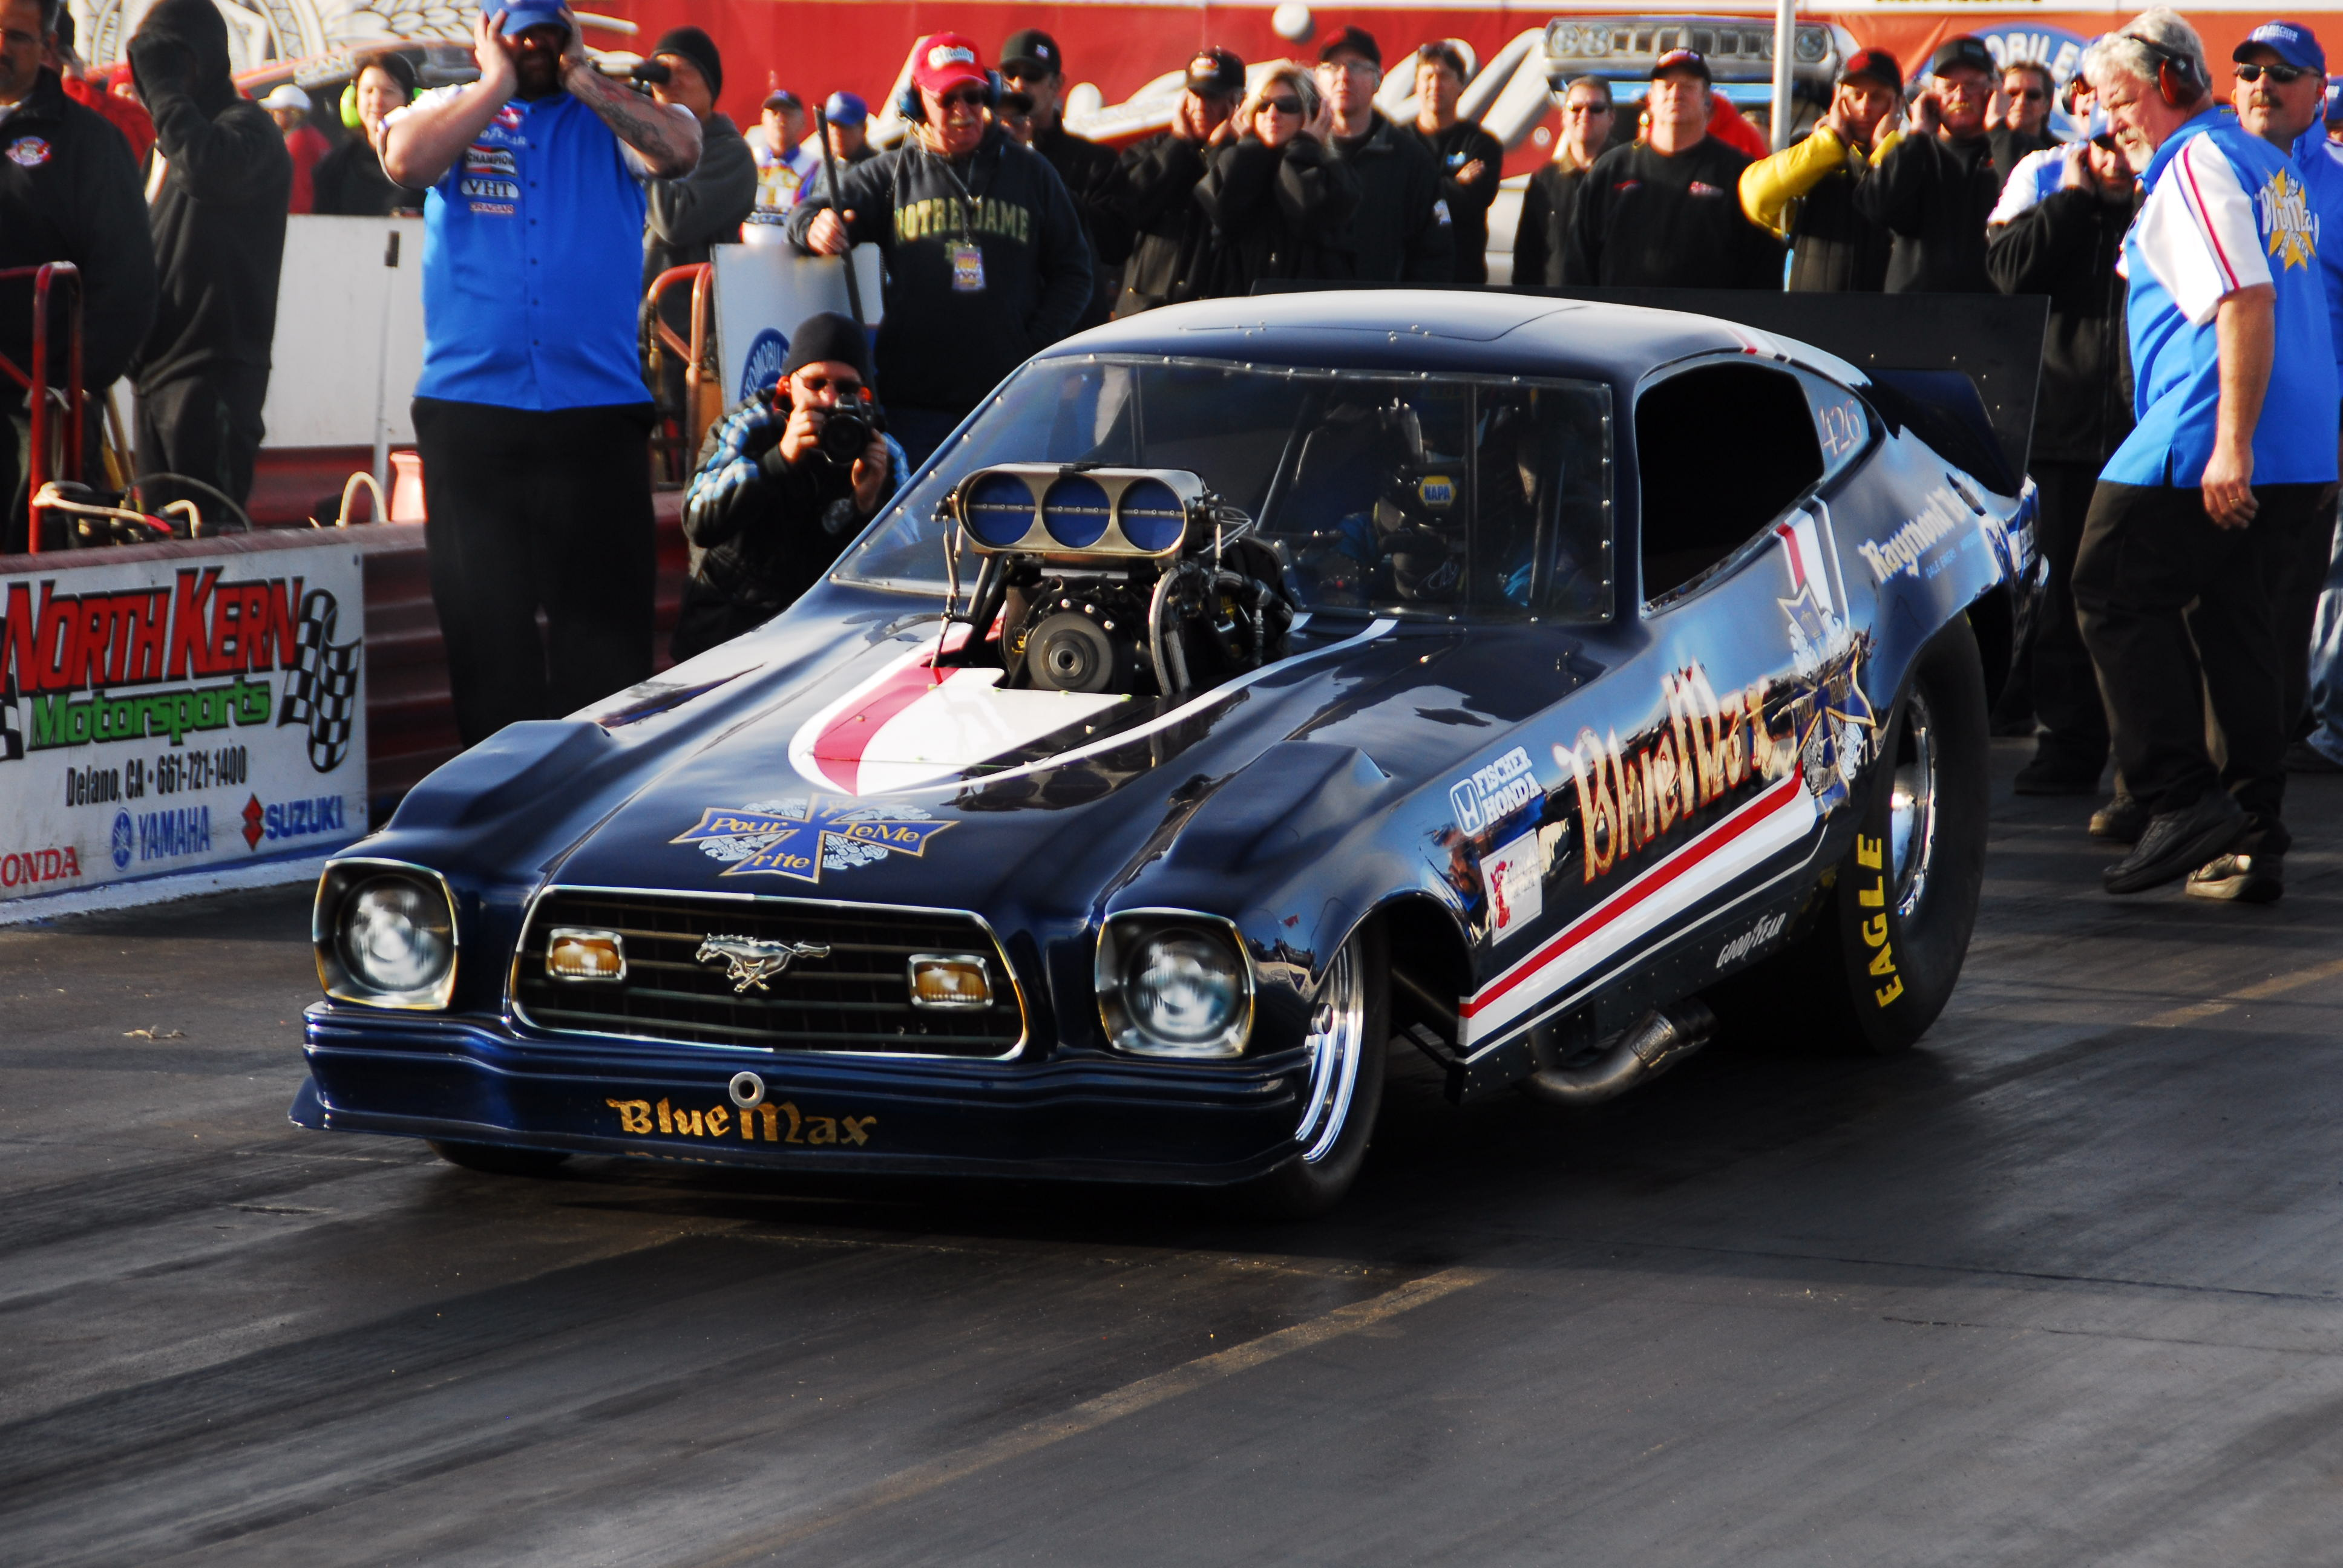 nhra drag racing race hot rod rods BLUE MAX ford mustang g wallpaper 3872x2592